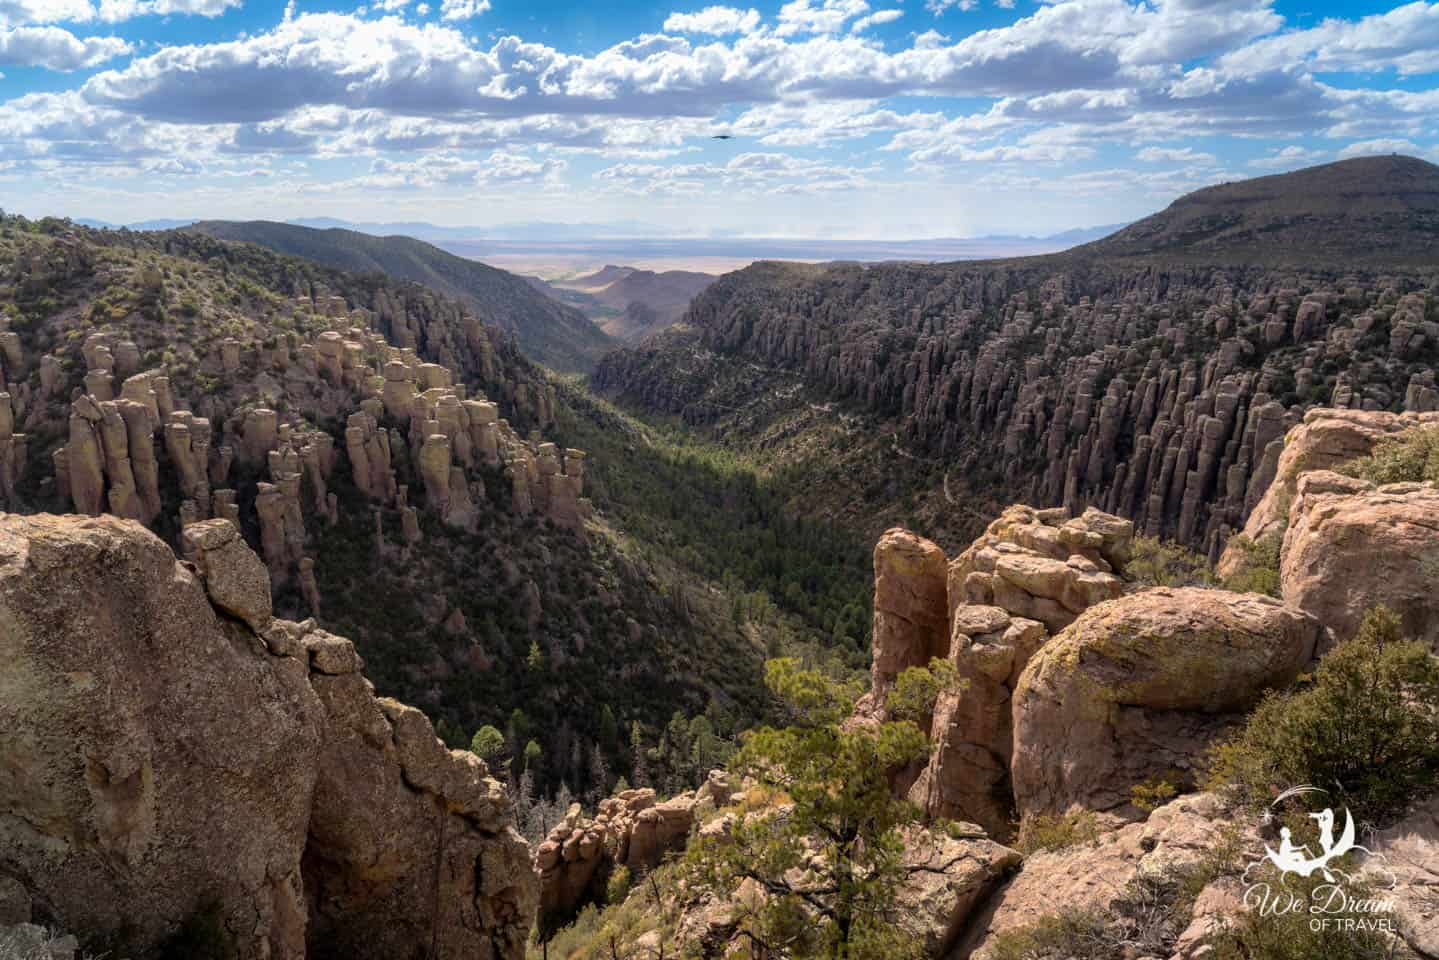 Landscape photography from Inspiration Point in Chiricahua NM